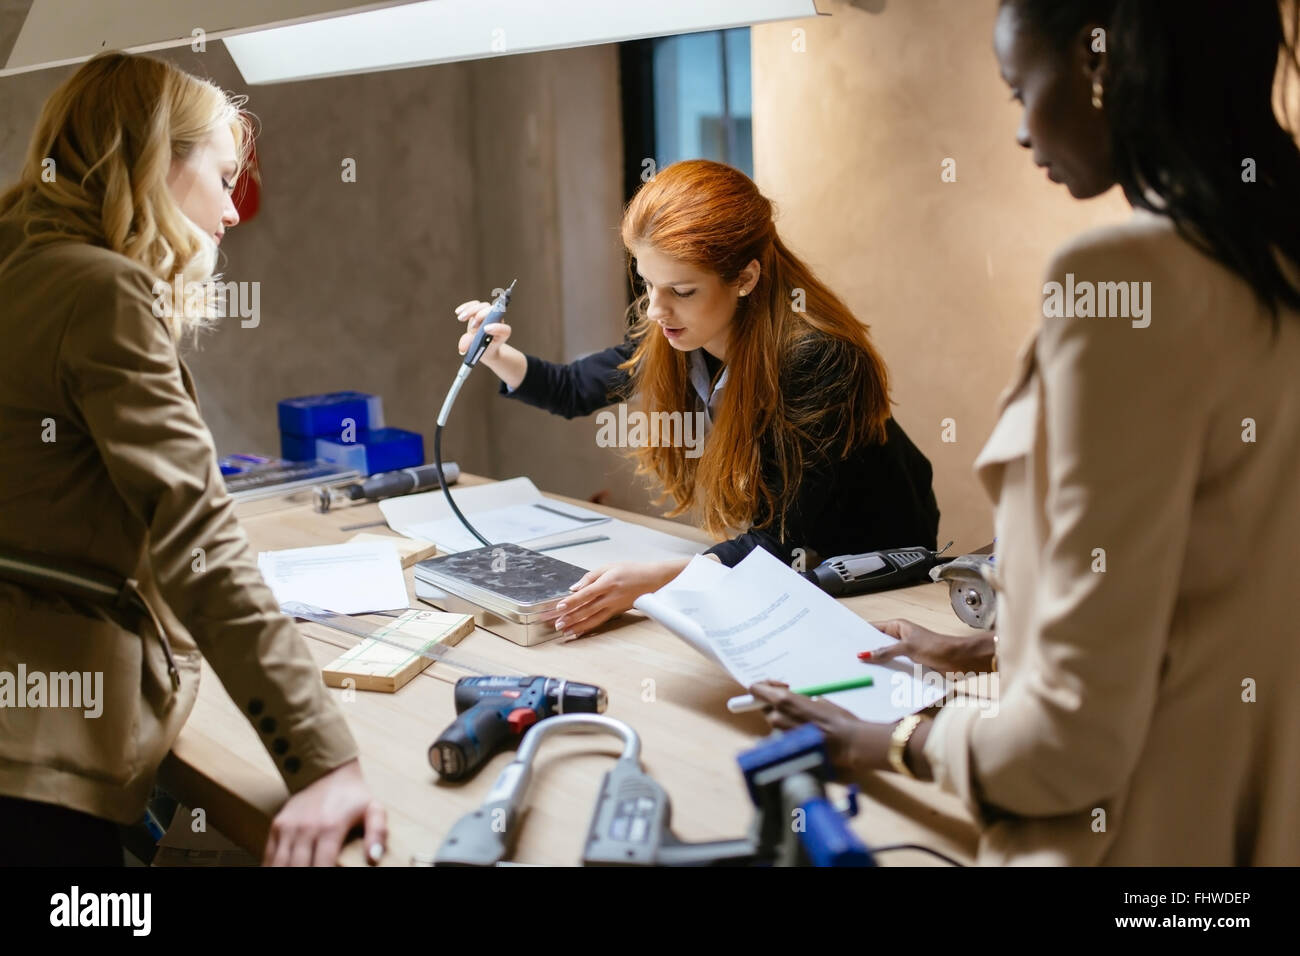 Creative women working on project and brainstorming in workshop - Stock Image